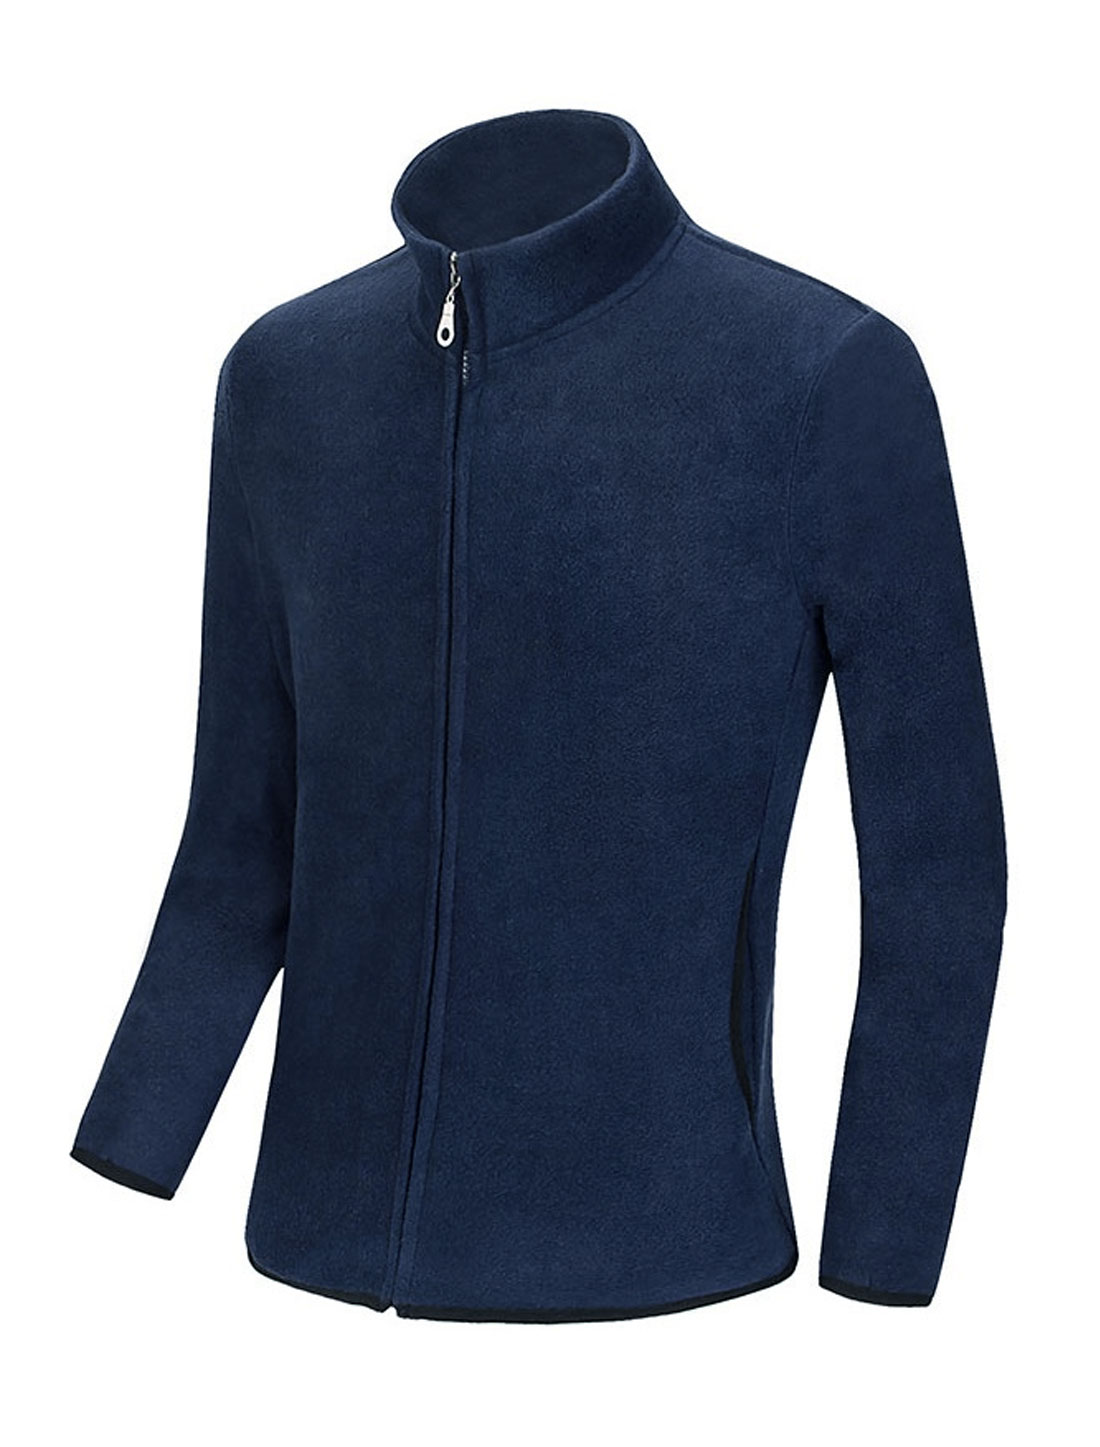 Men Long Sleeve Stand Collar Zip Up Leisure Fleece Jacket Navy Blue M